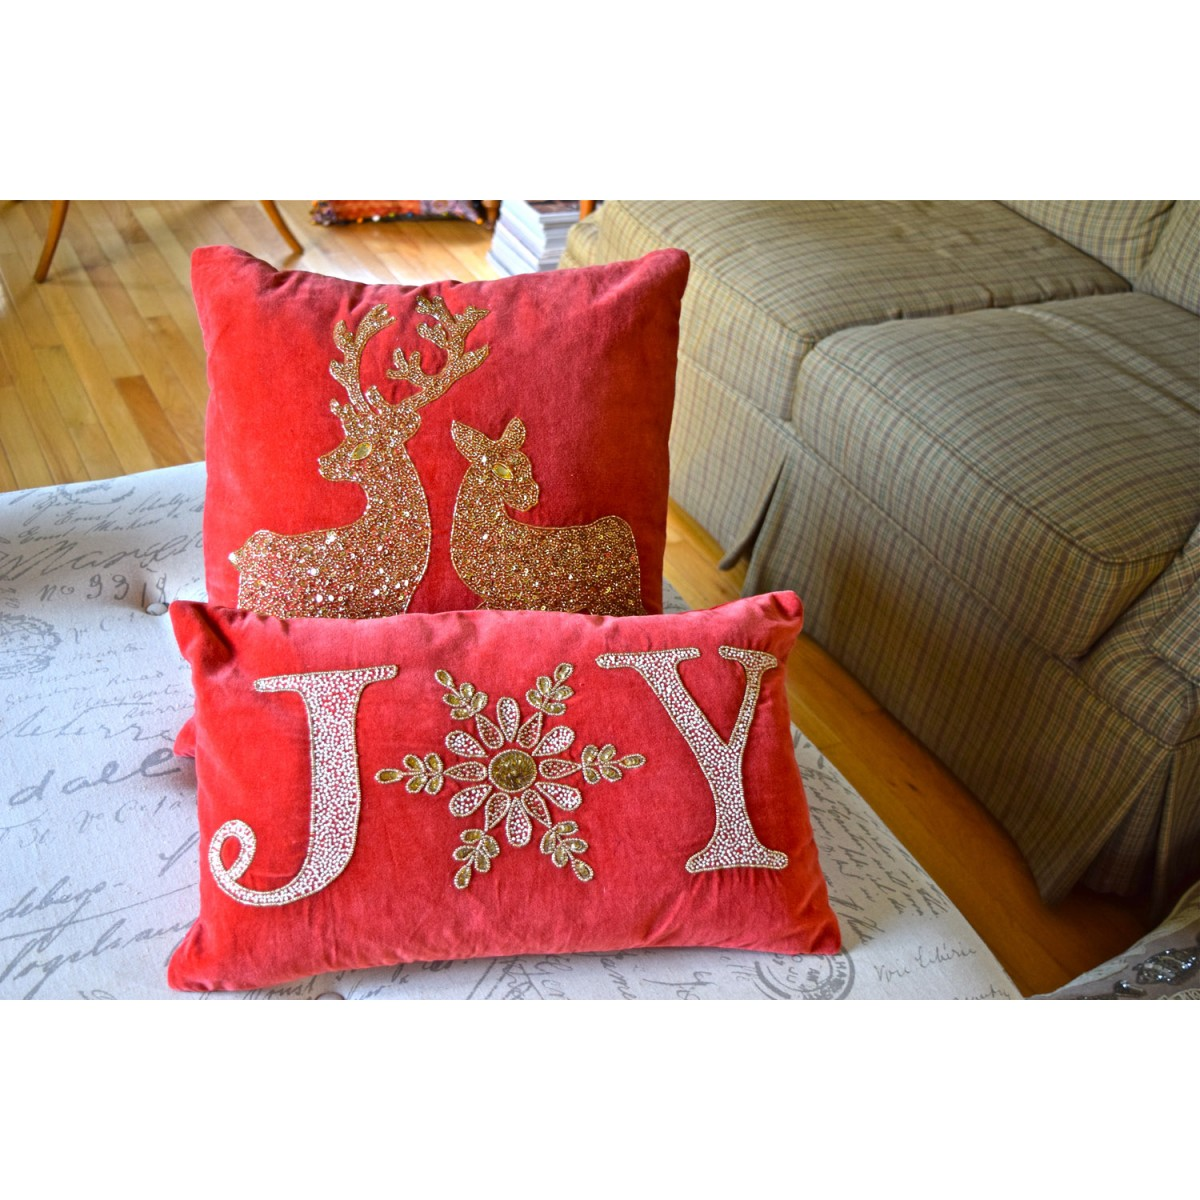 Joy Red Velvet Beaded Lumbar Pillow Red Velvet Lumbar